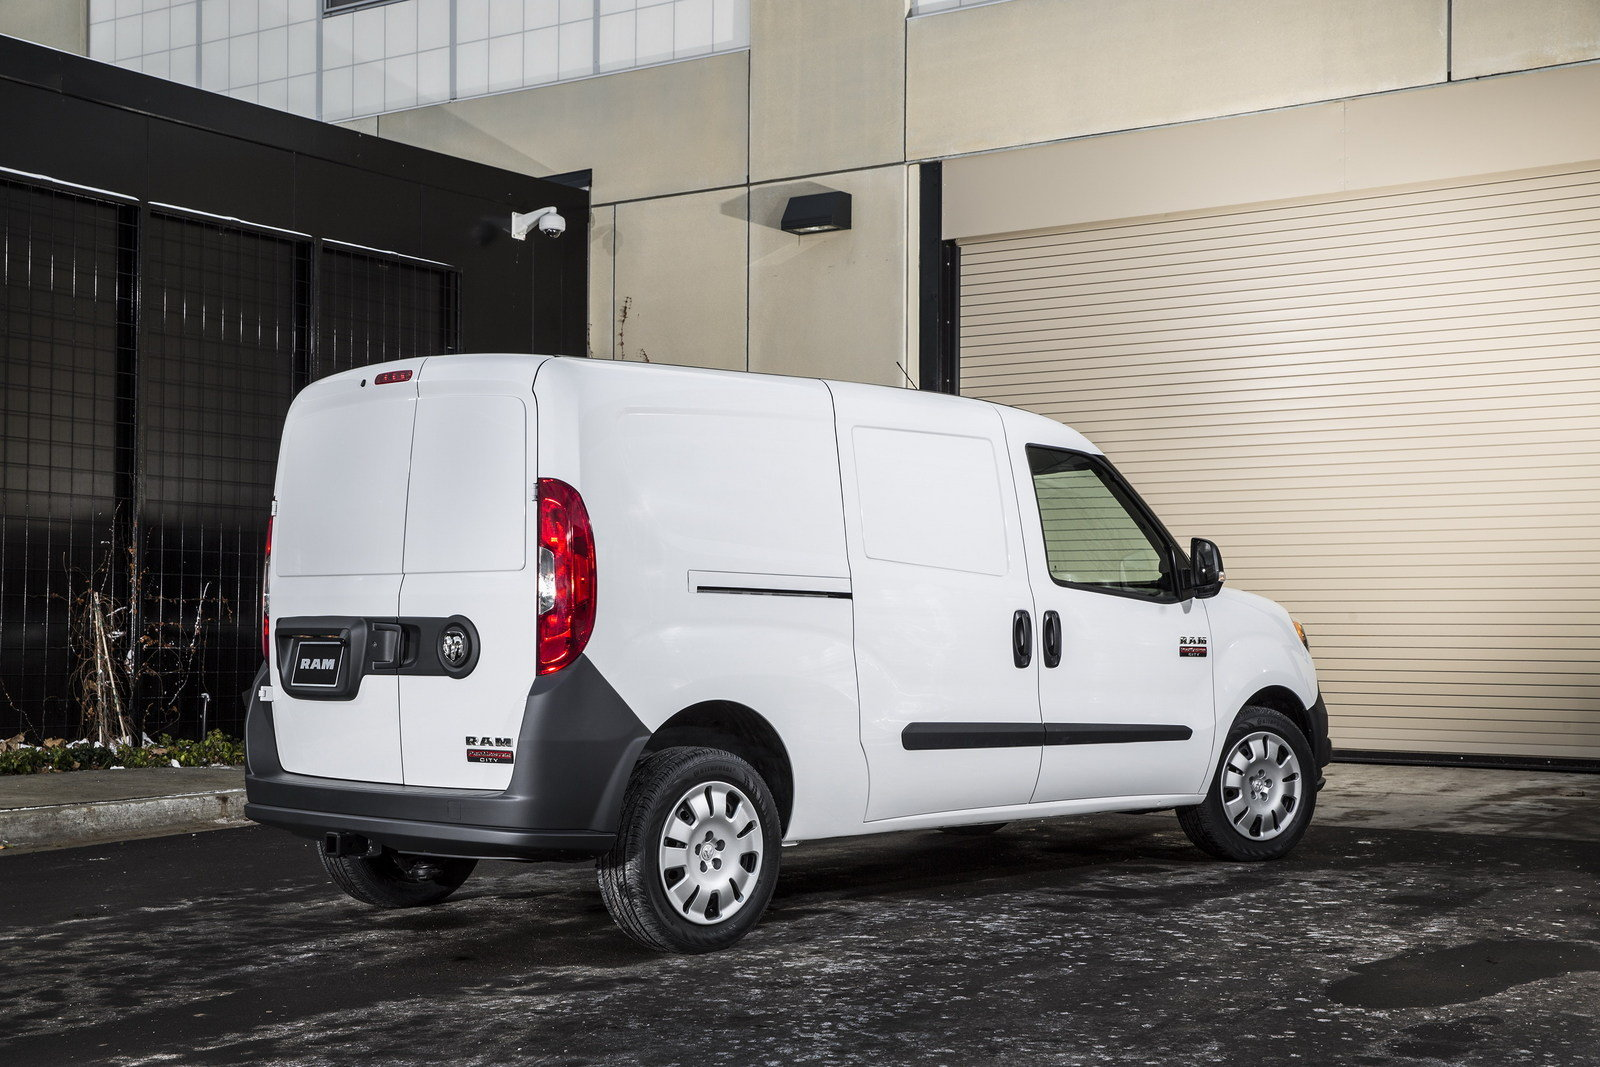 2015 ram promaster city picture 557860 car review top speed. Black Bedroom Furniture Sets. Home Design Ideas